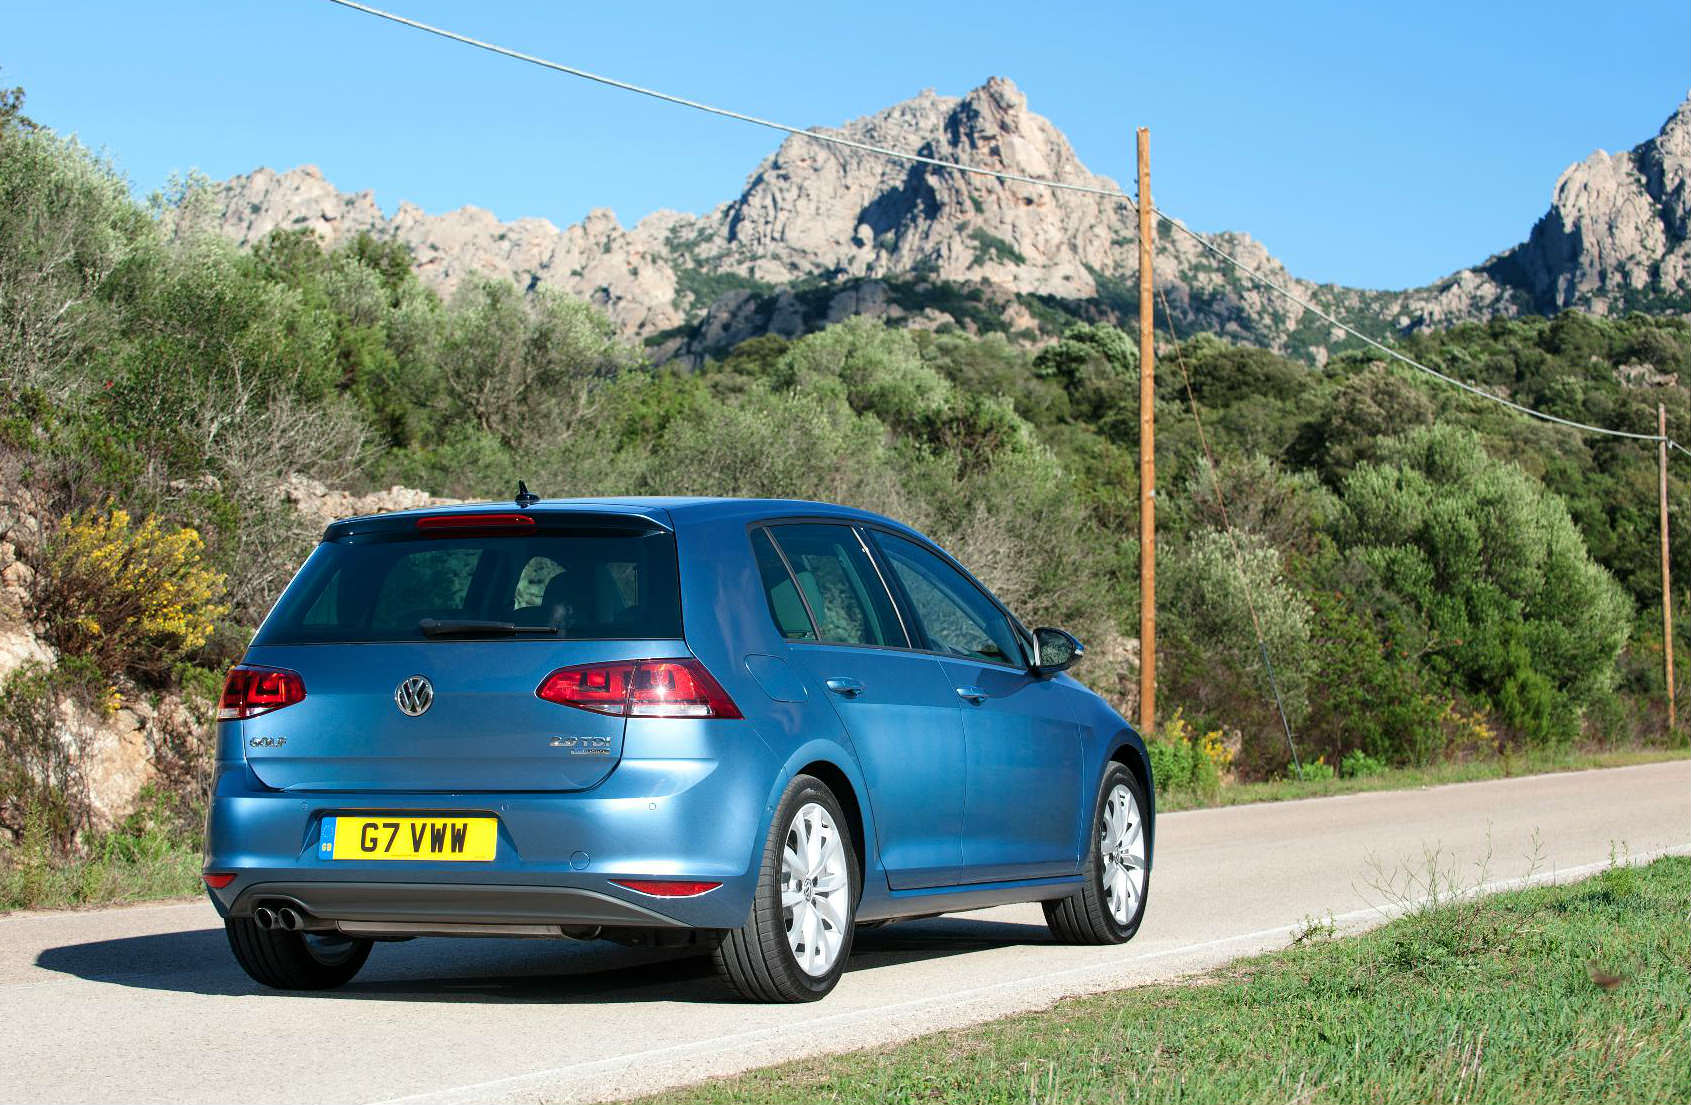 /The VW Golf mk7 makes for a good used family hatchback